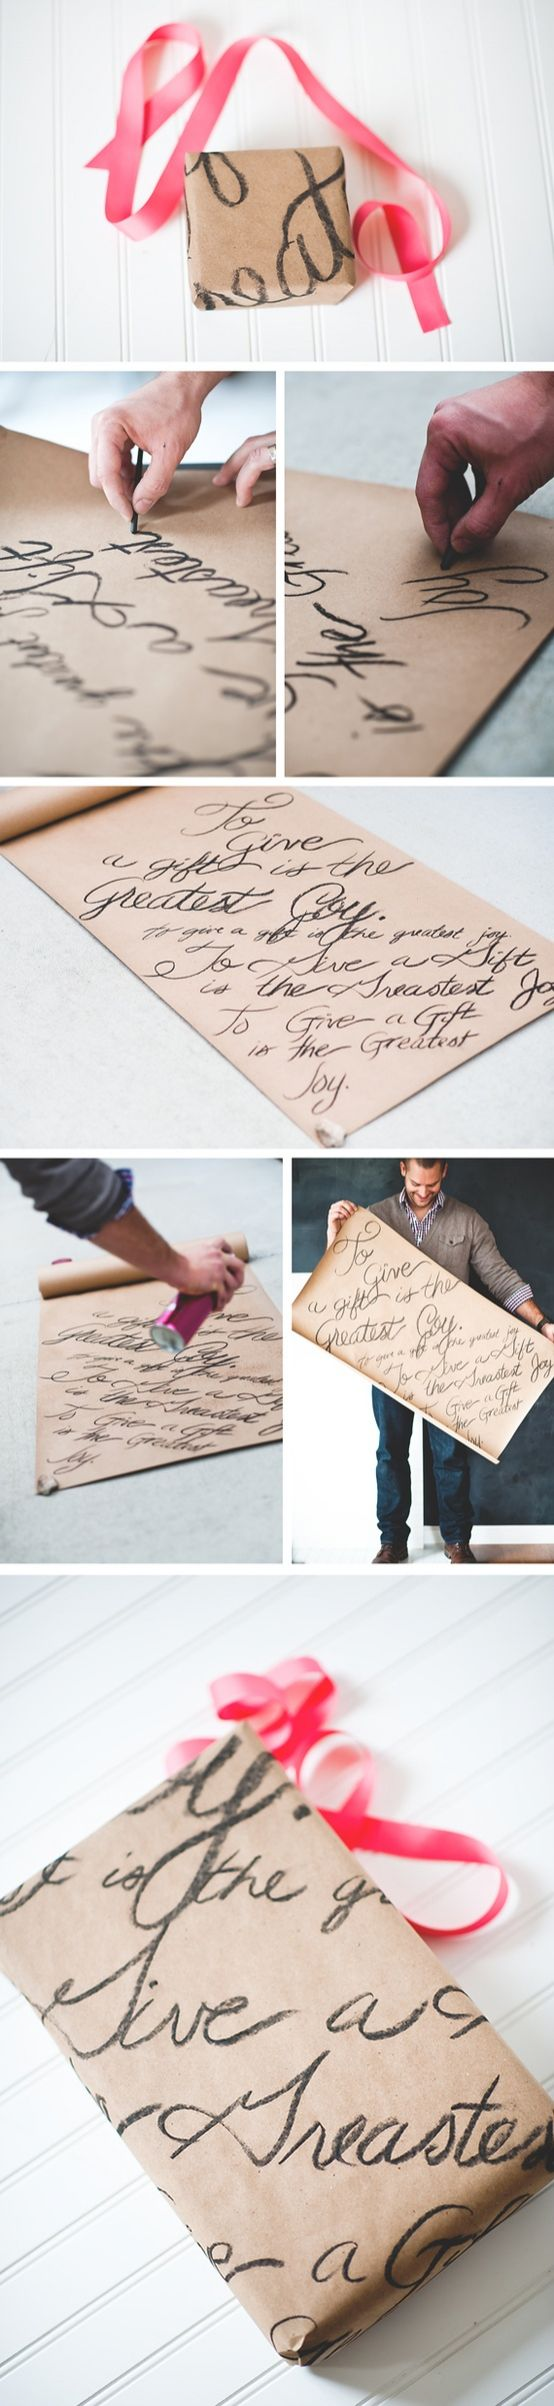 hand-font-lettered-wrapping-paper